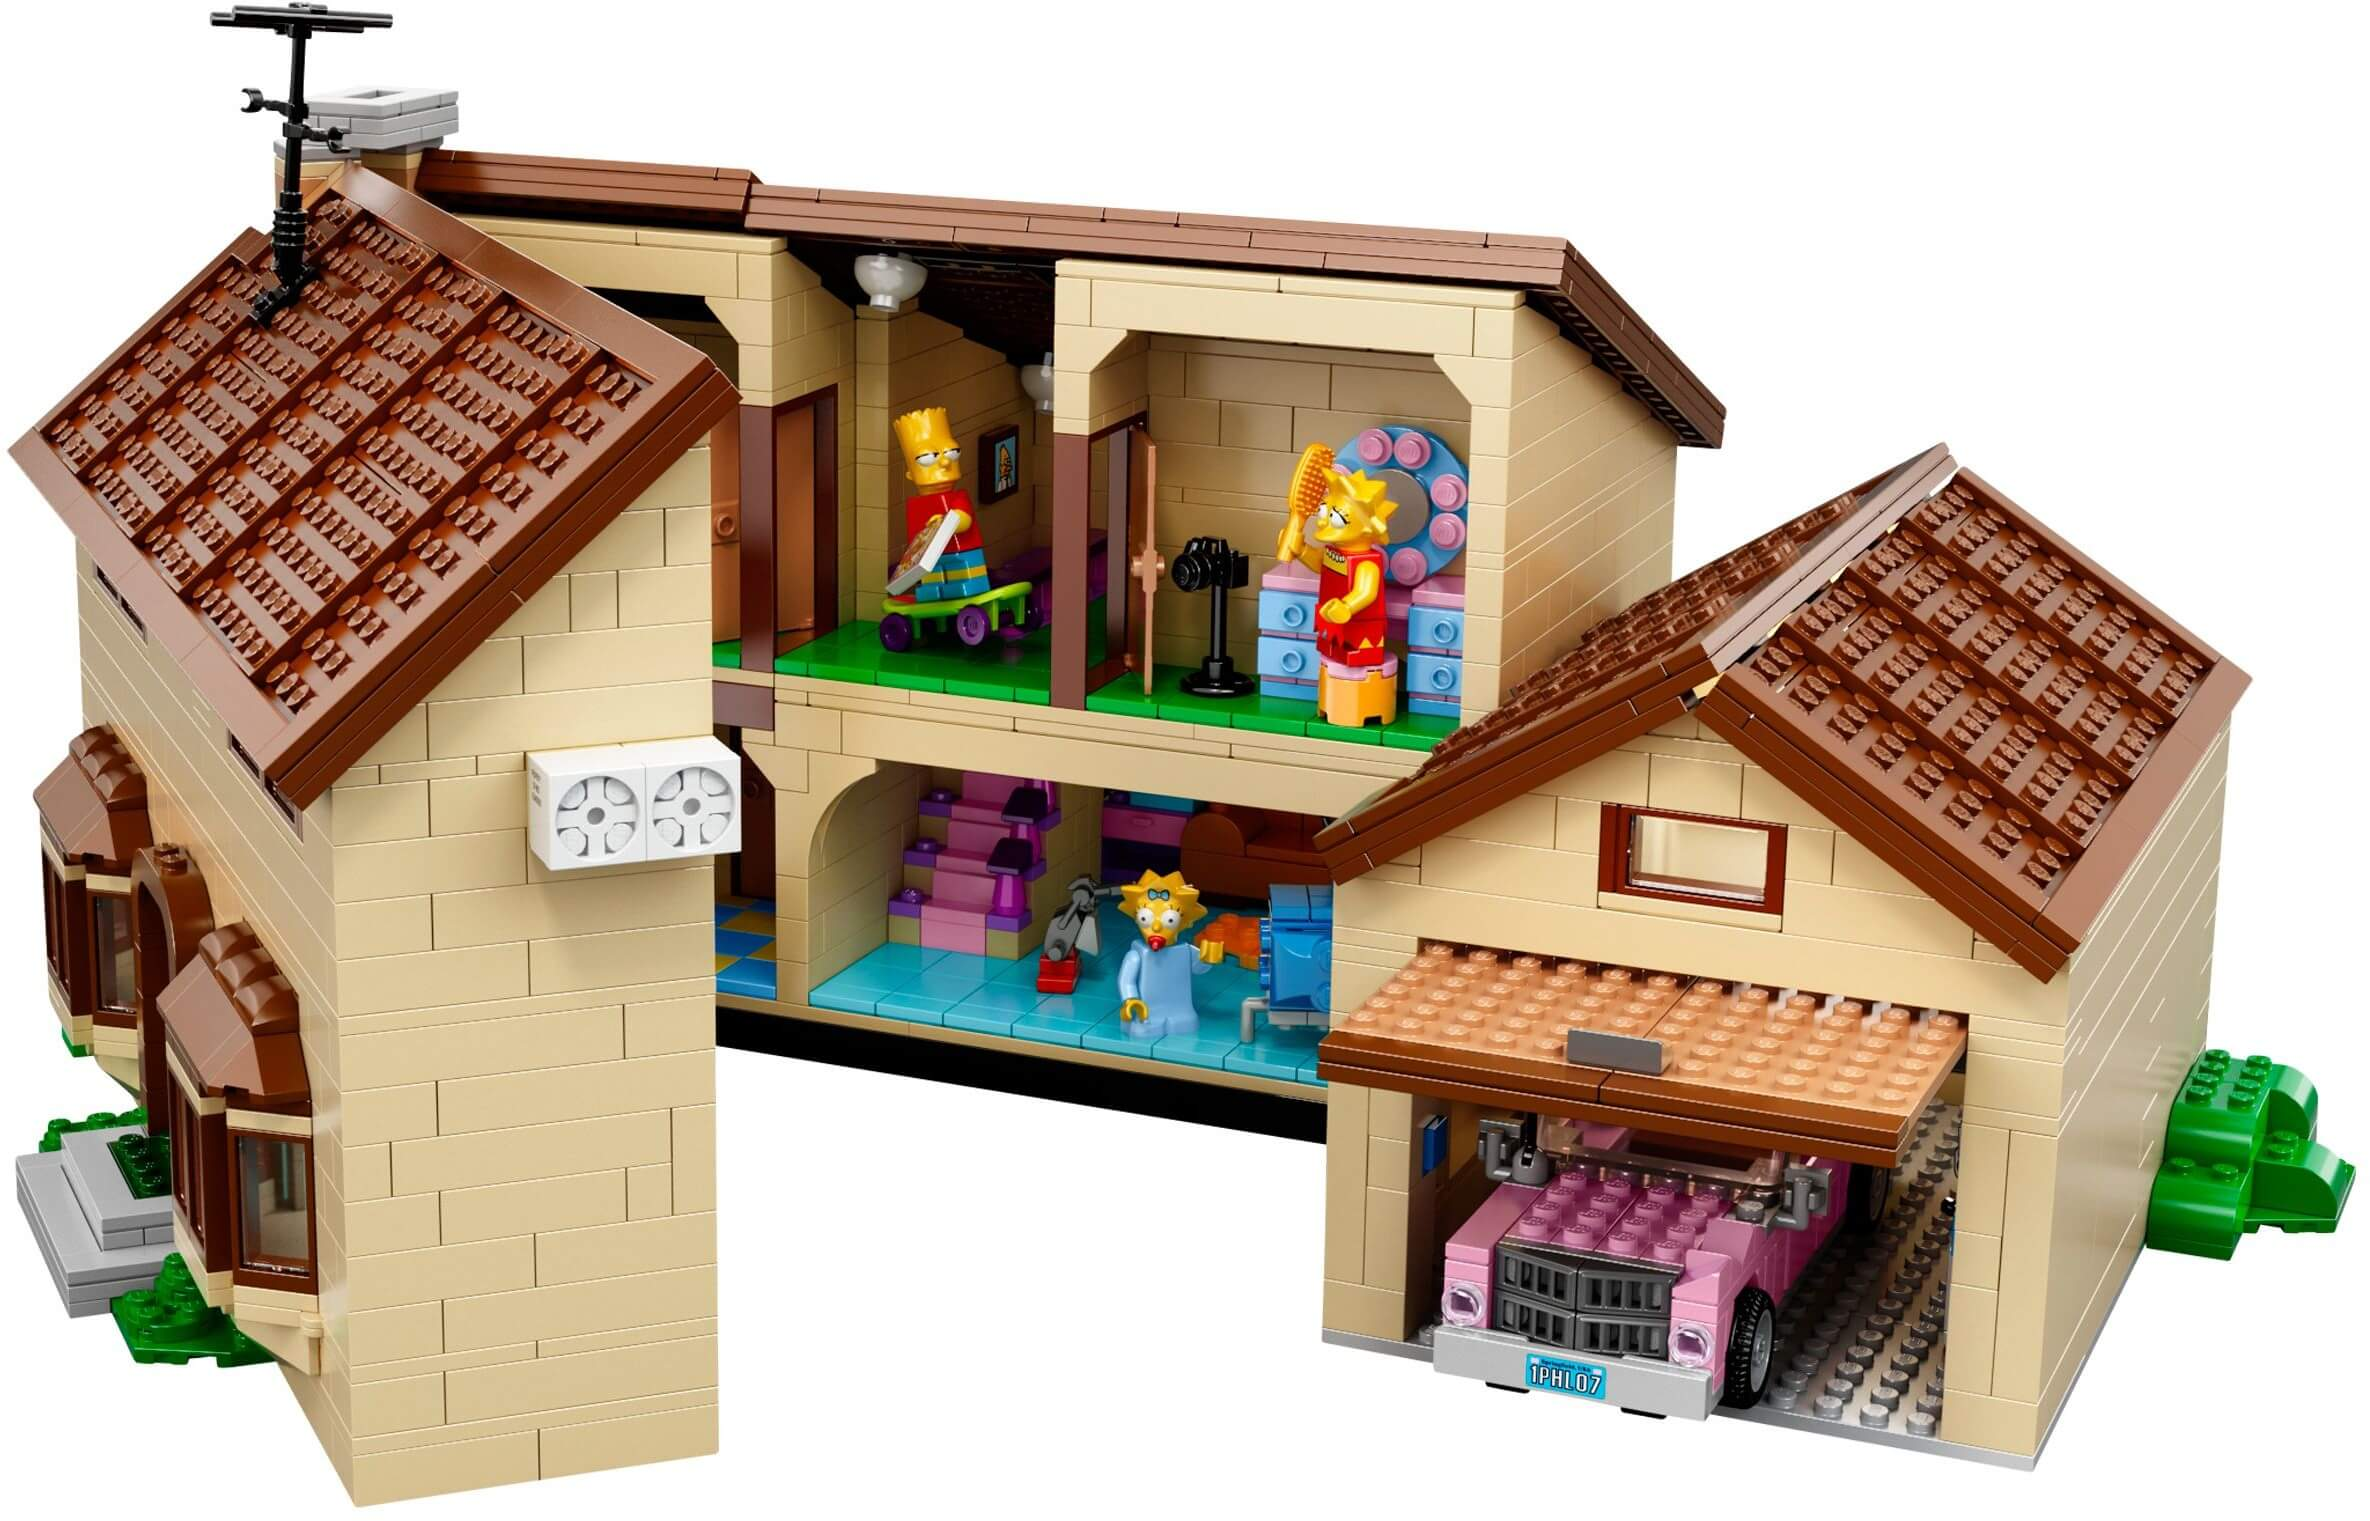 Mua đồ chơi LEGO 71006 - LEGO The Simpsons 71006 - Ngôi nhà của Gia đình Simpsons (LEGO The Simpsons Exclusives The Simpsons House 71006)